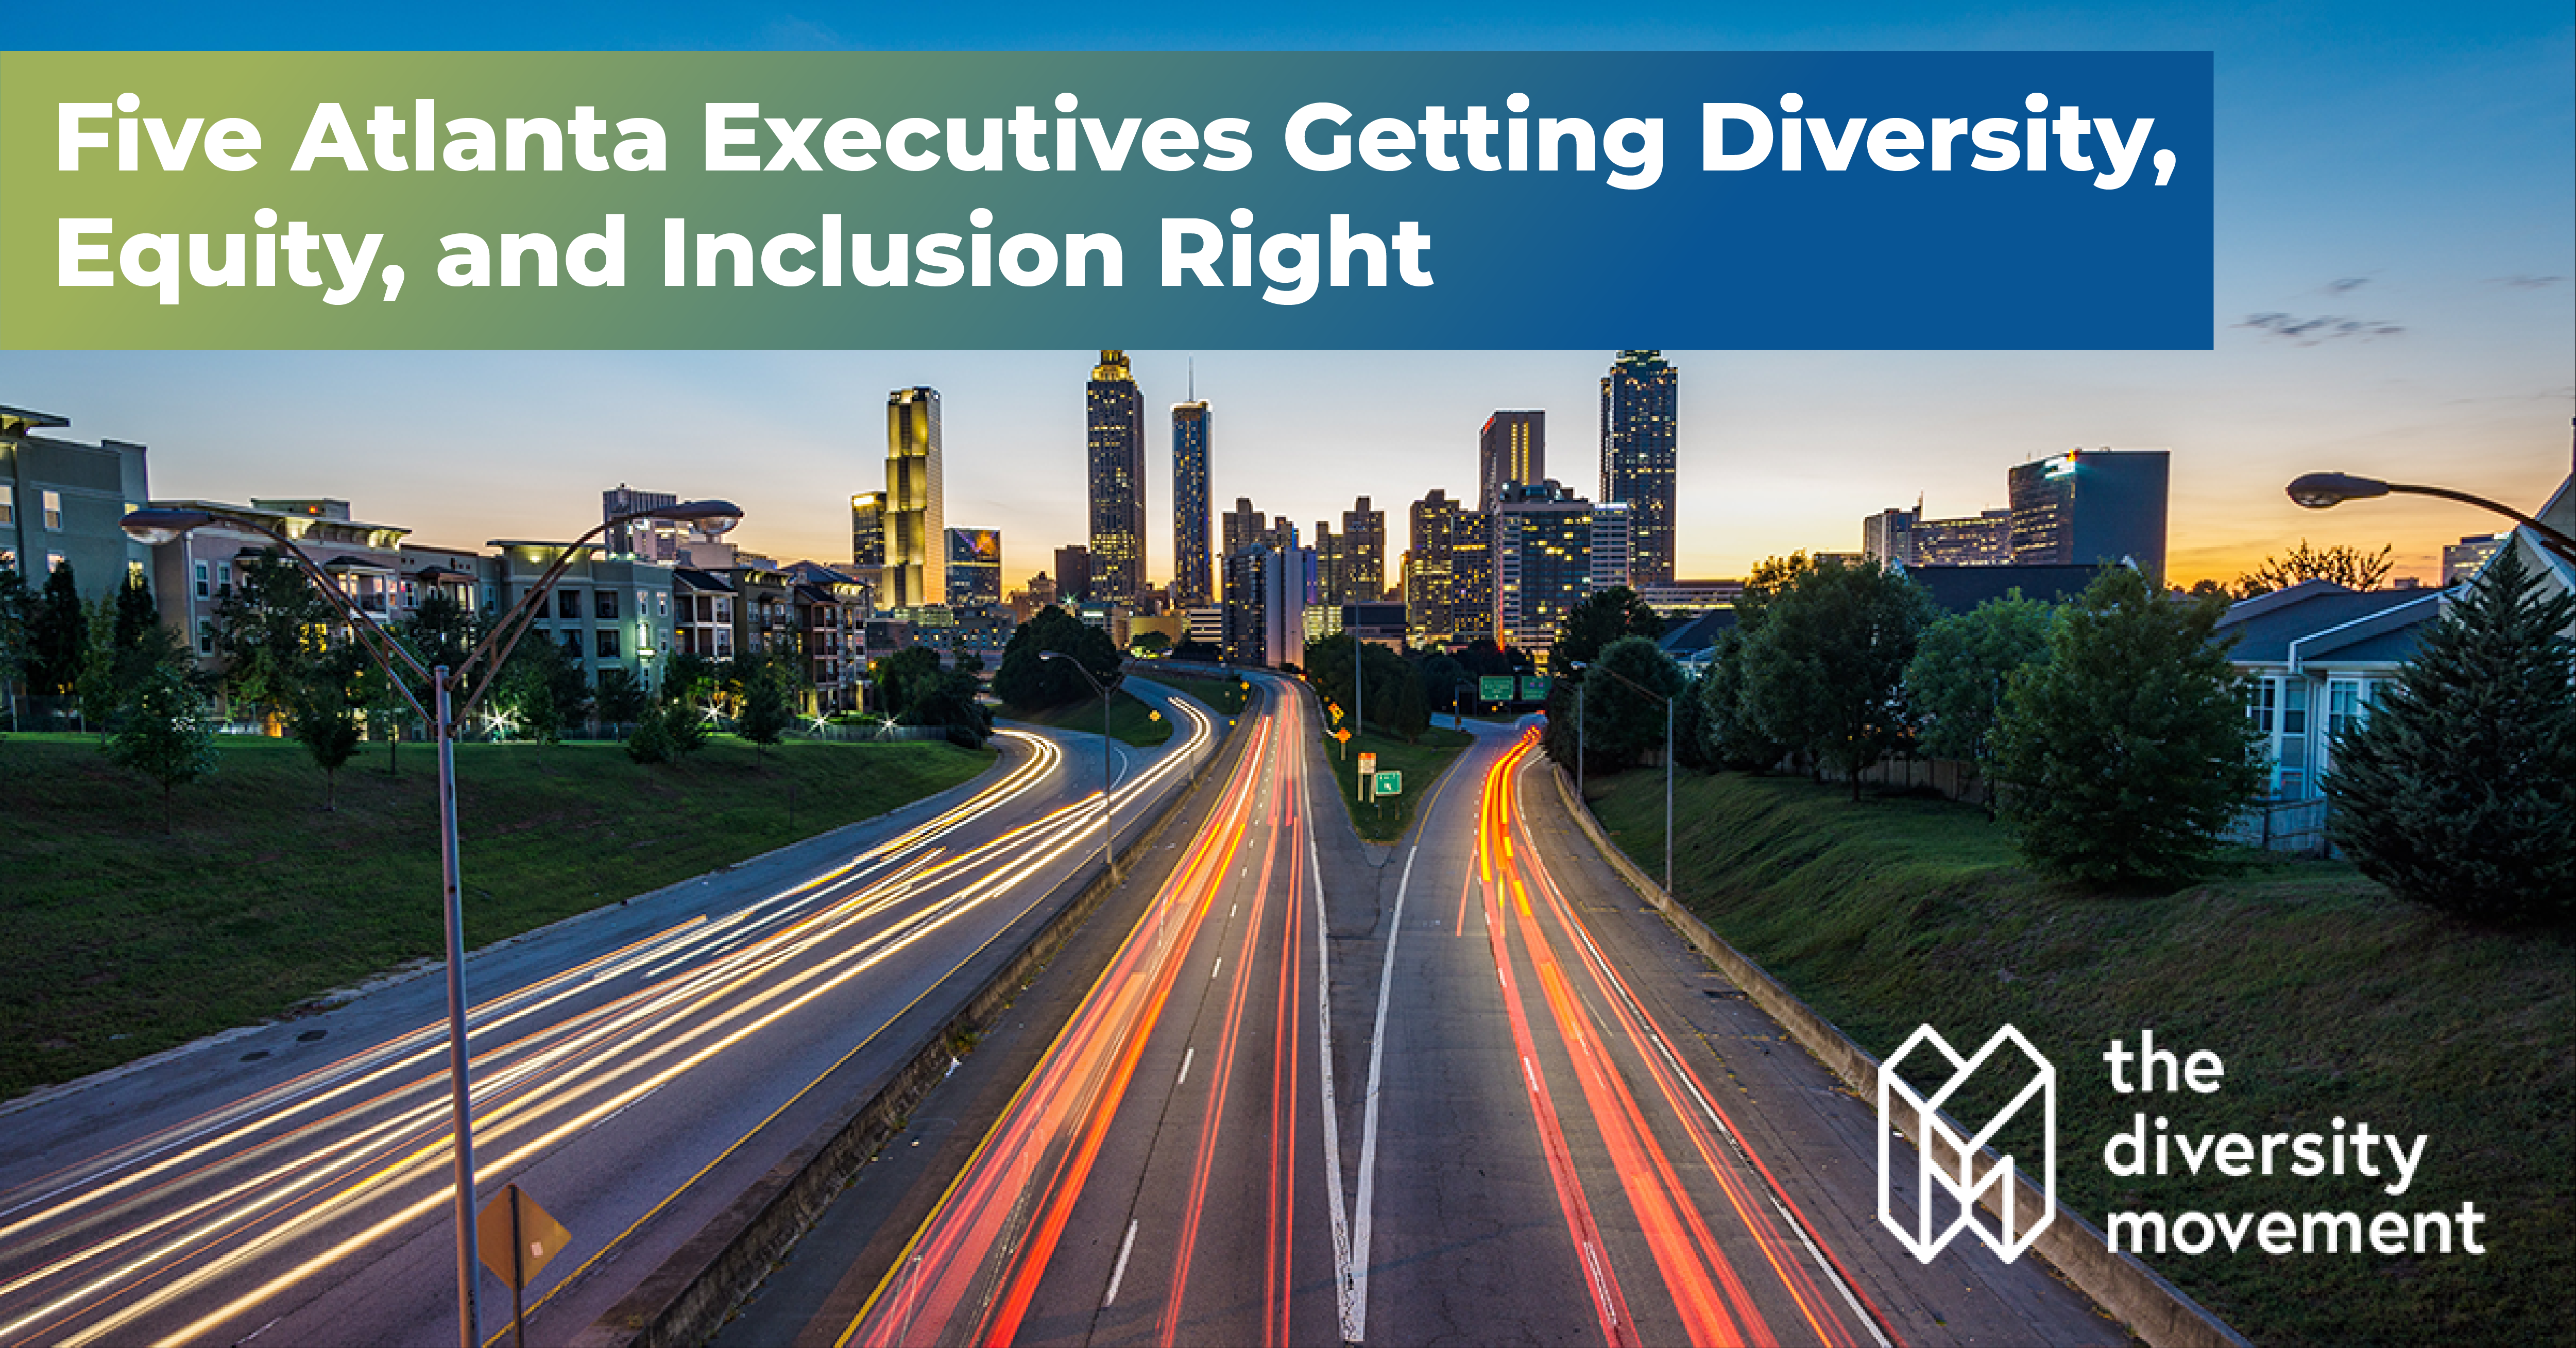 Five Atlanta Executives Getting Diversity, Equity, and Inclusion Right